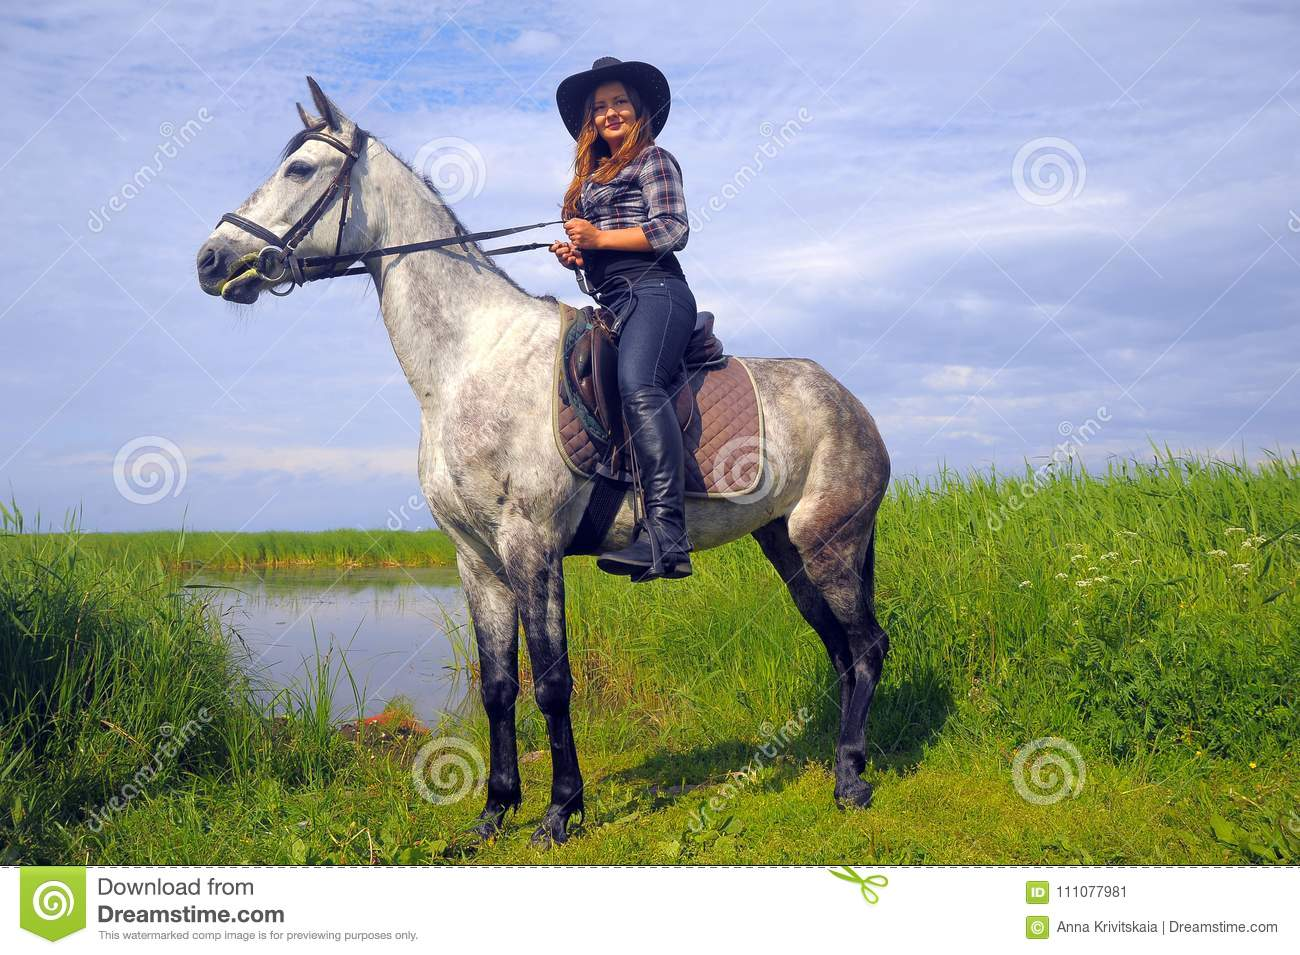 Girl in plaid shirt and cowboy hat riding a horse